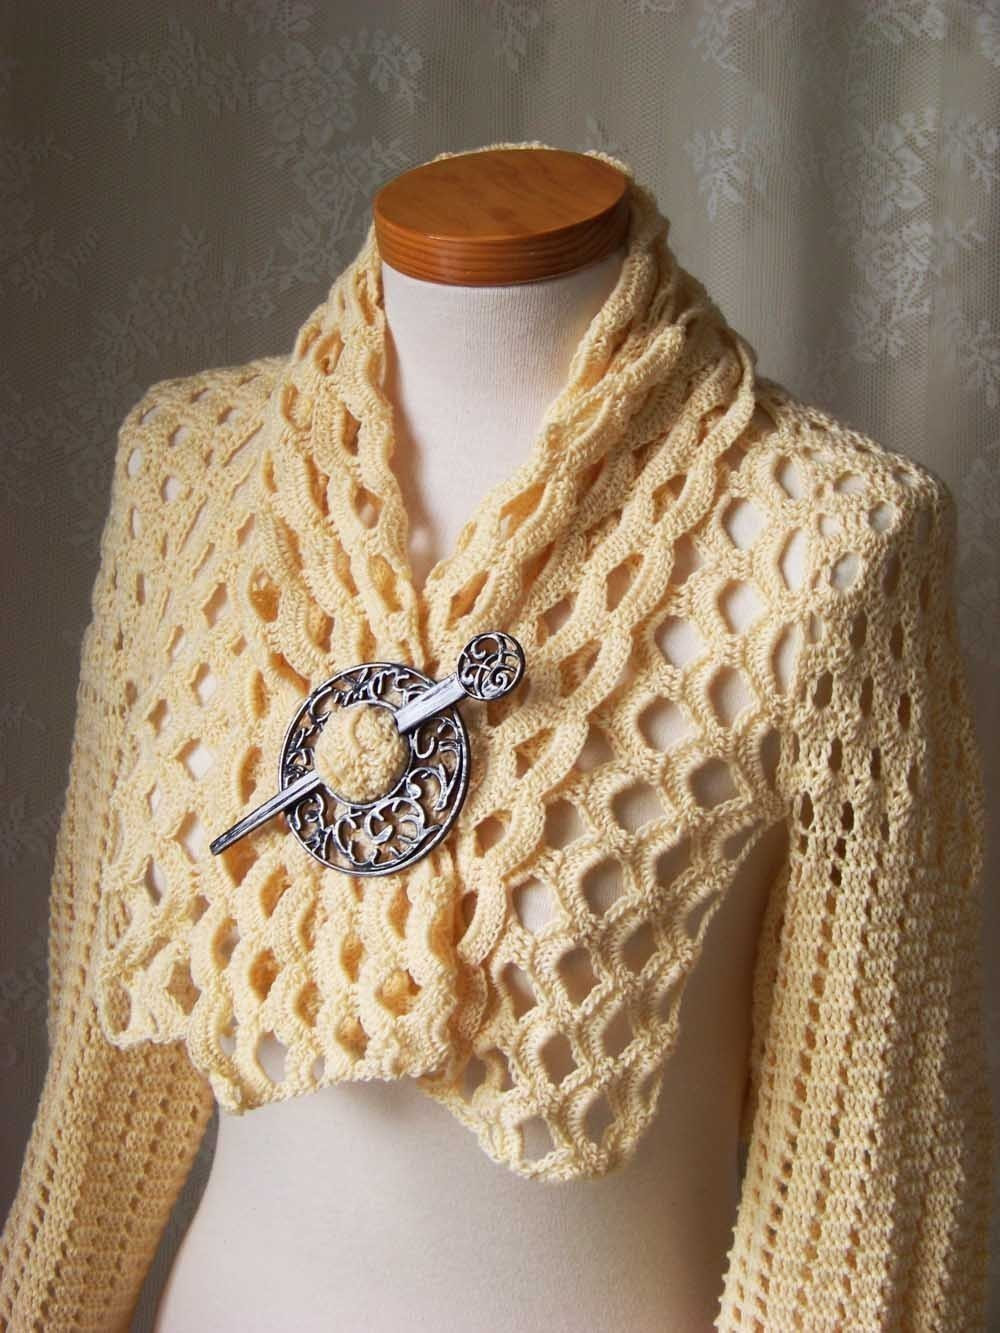 Crochet Boleros Patterns Luxury Vanilla Crochet Shrug Pattern Pdf Of Amazing 41 Ideas Crochet Boleros Patterns